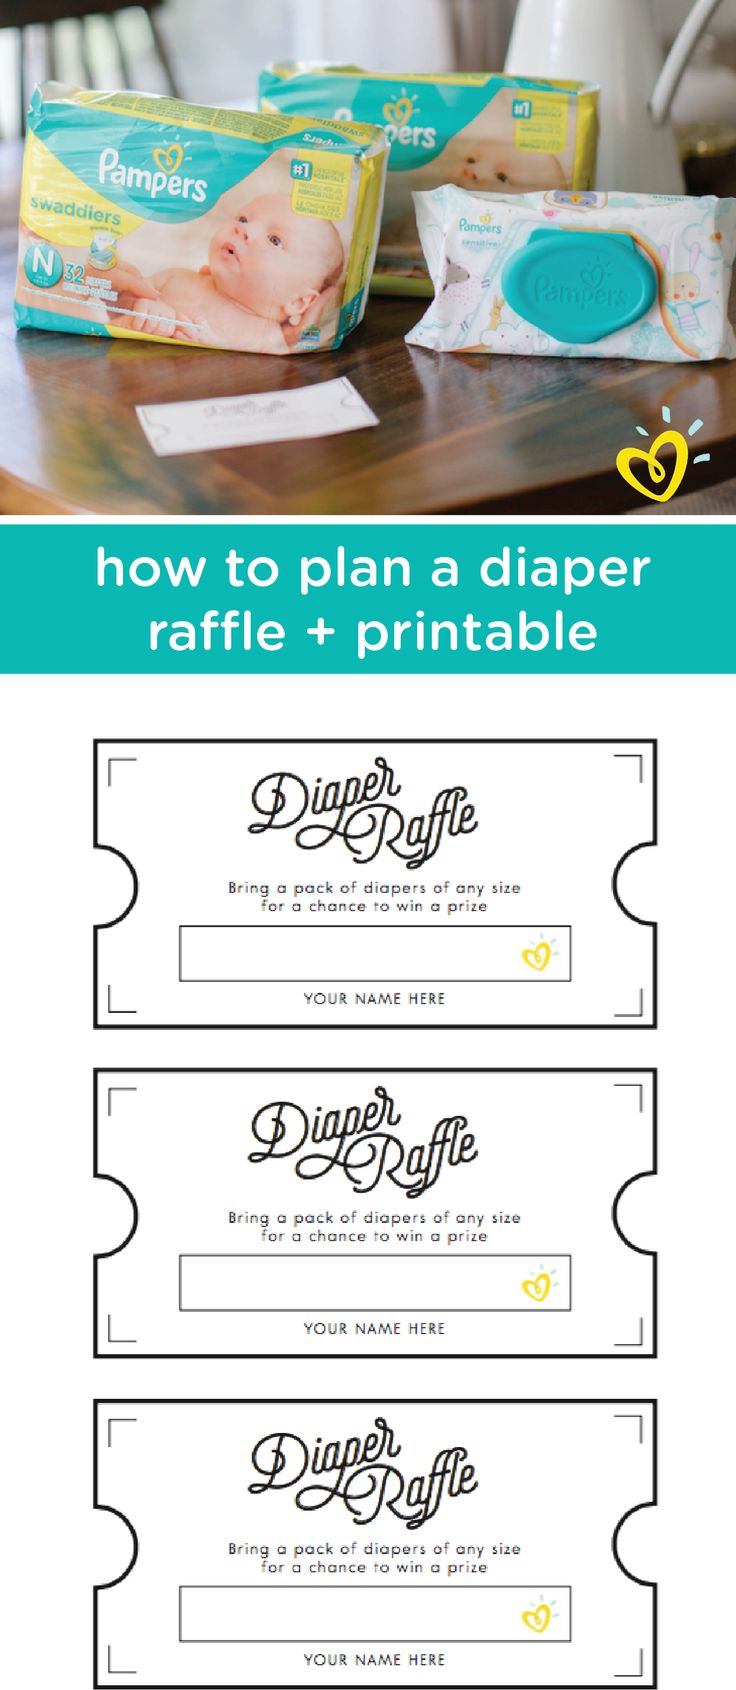 Stock up on baby supplies while having fun at the same time with this DIY diaper raffle. For every pack of Pampers Swaddlers diapers that your guests bring, they can earn one of these free printable raffle tickets. Offer up creative prizes or gift baskets that you know your friends and family will love. Learn more by clicking here.